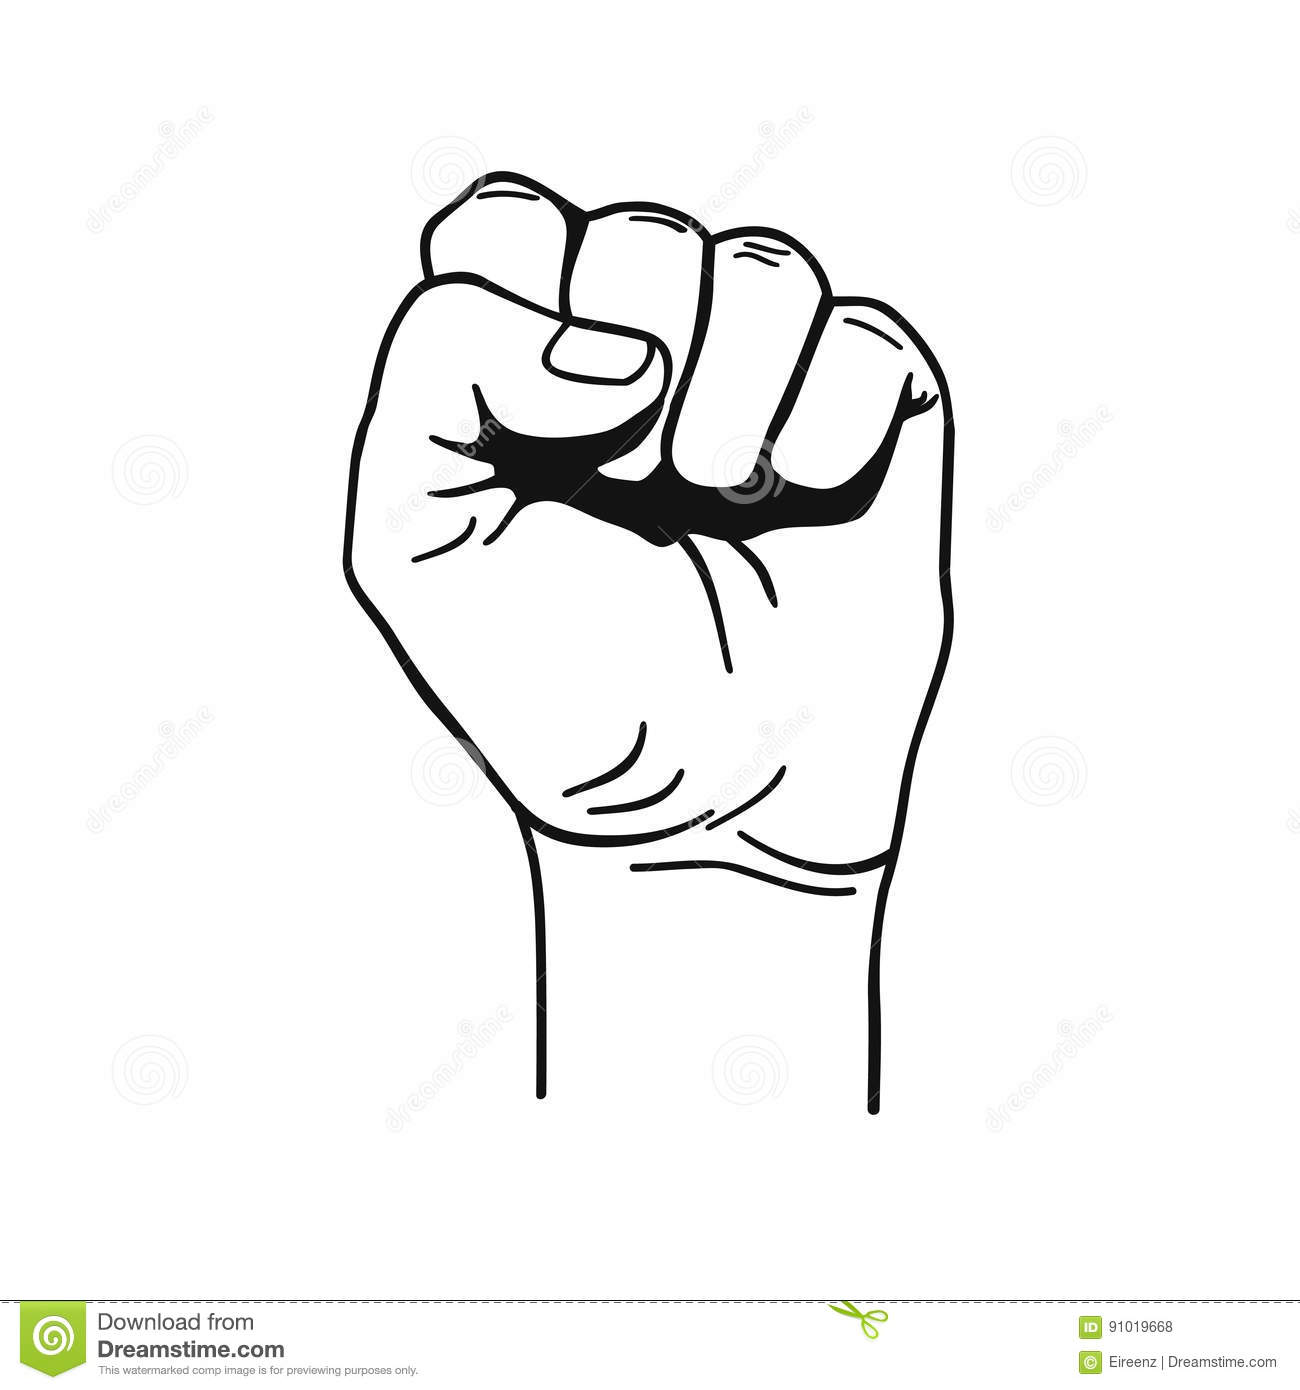 Vector Black And White Illustration Of Clenched Fist Held